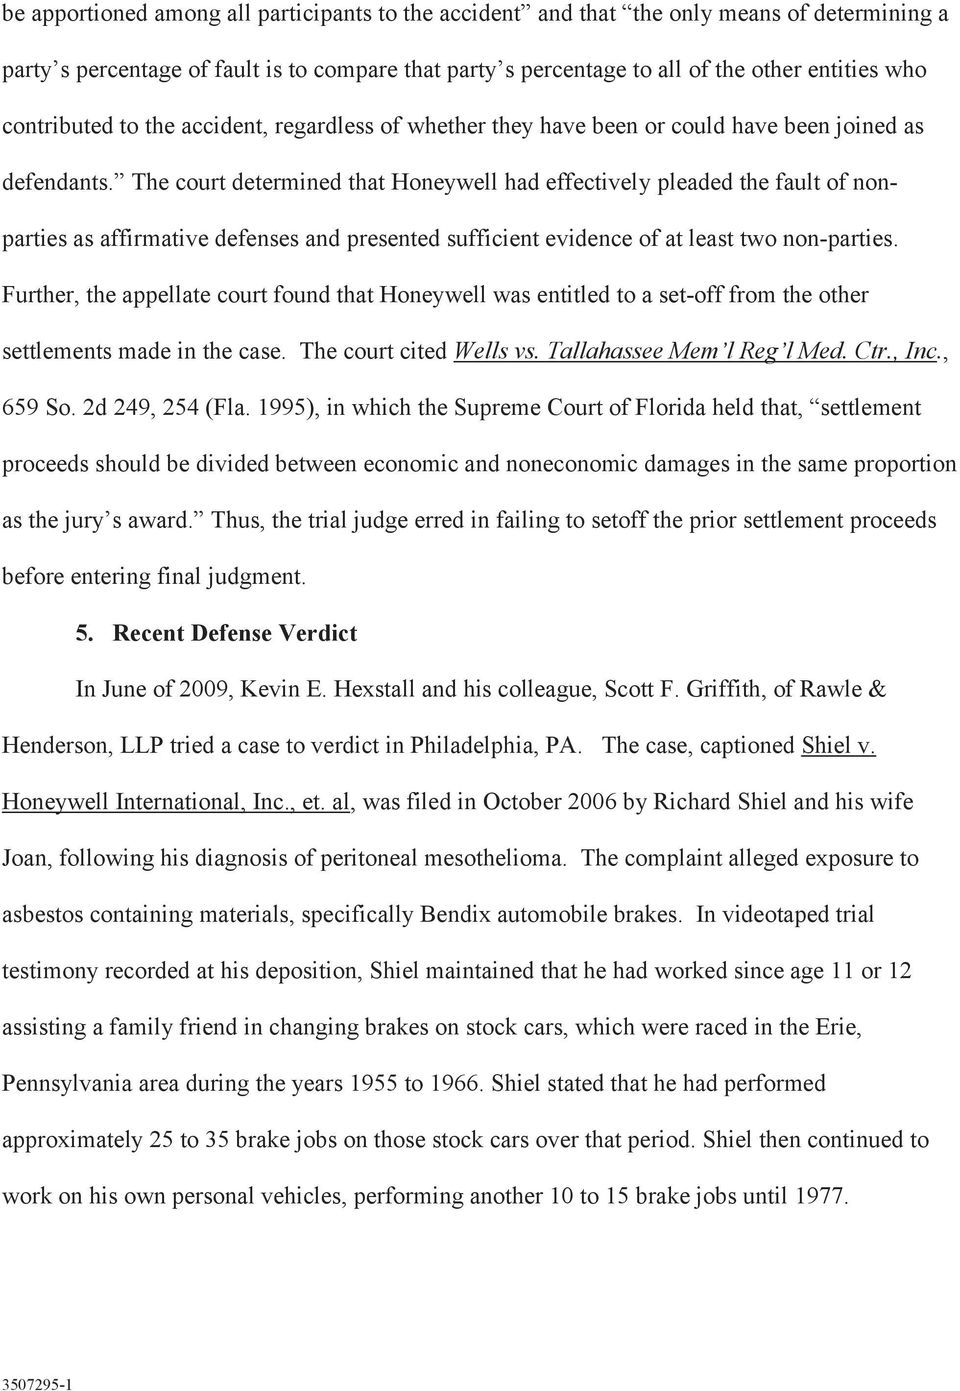 The court determined that Honeywell had effectively pleaded the fault of nonparties as affirmative defenses and presented sufficient evidence of at least two non-parties.